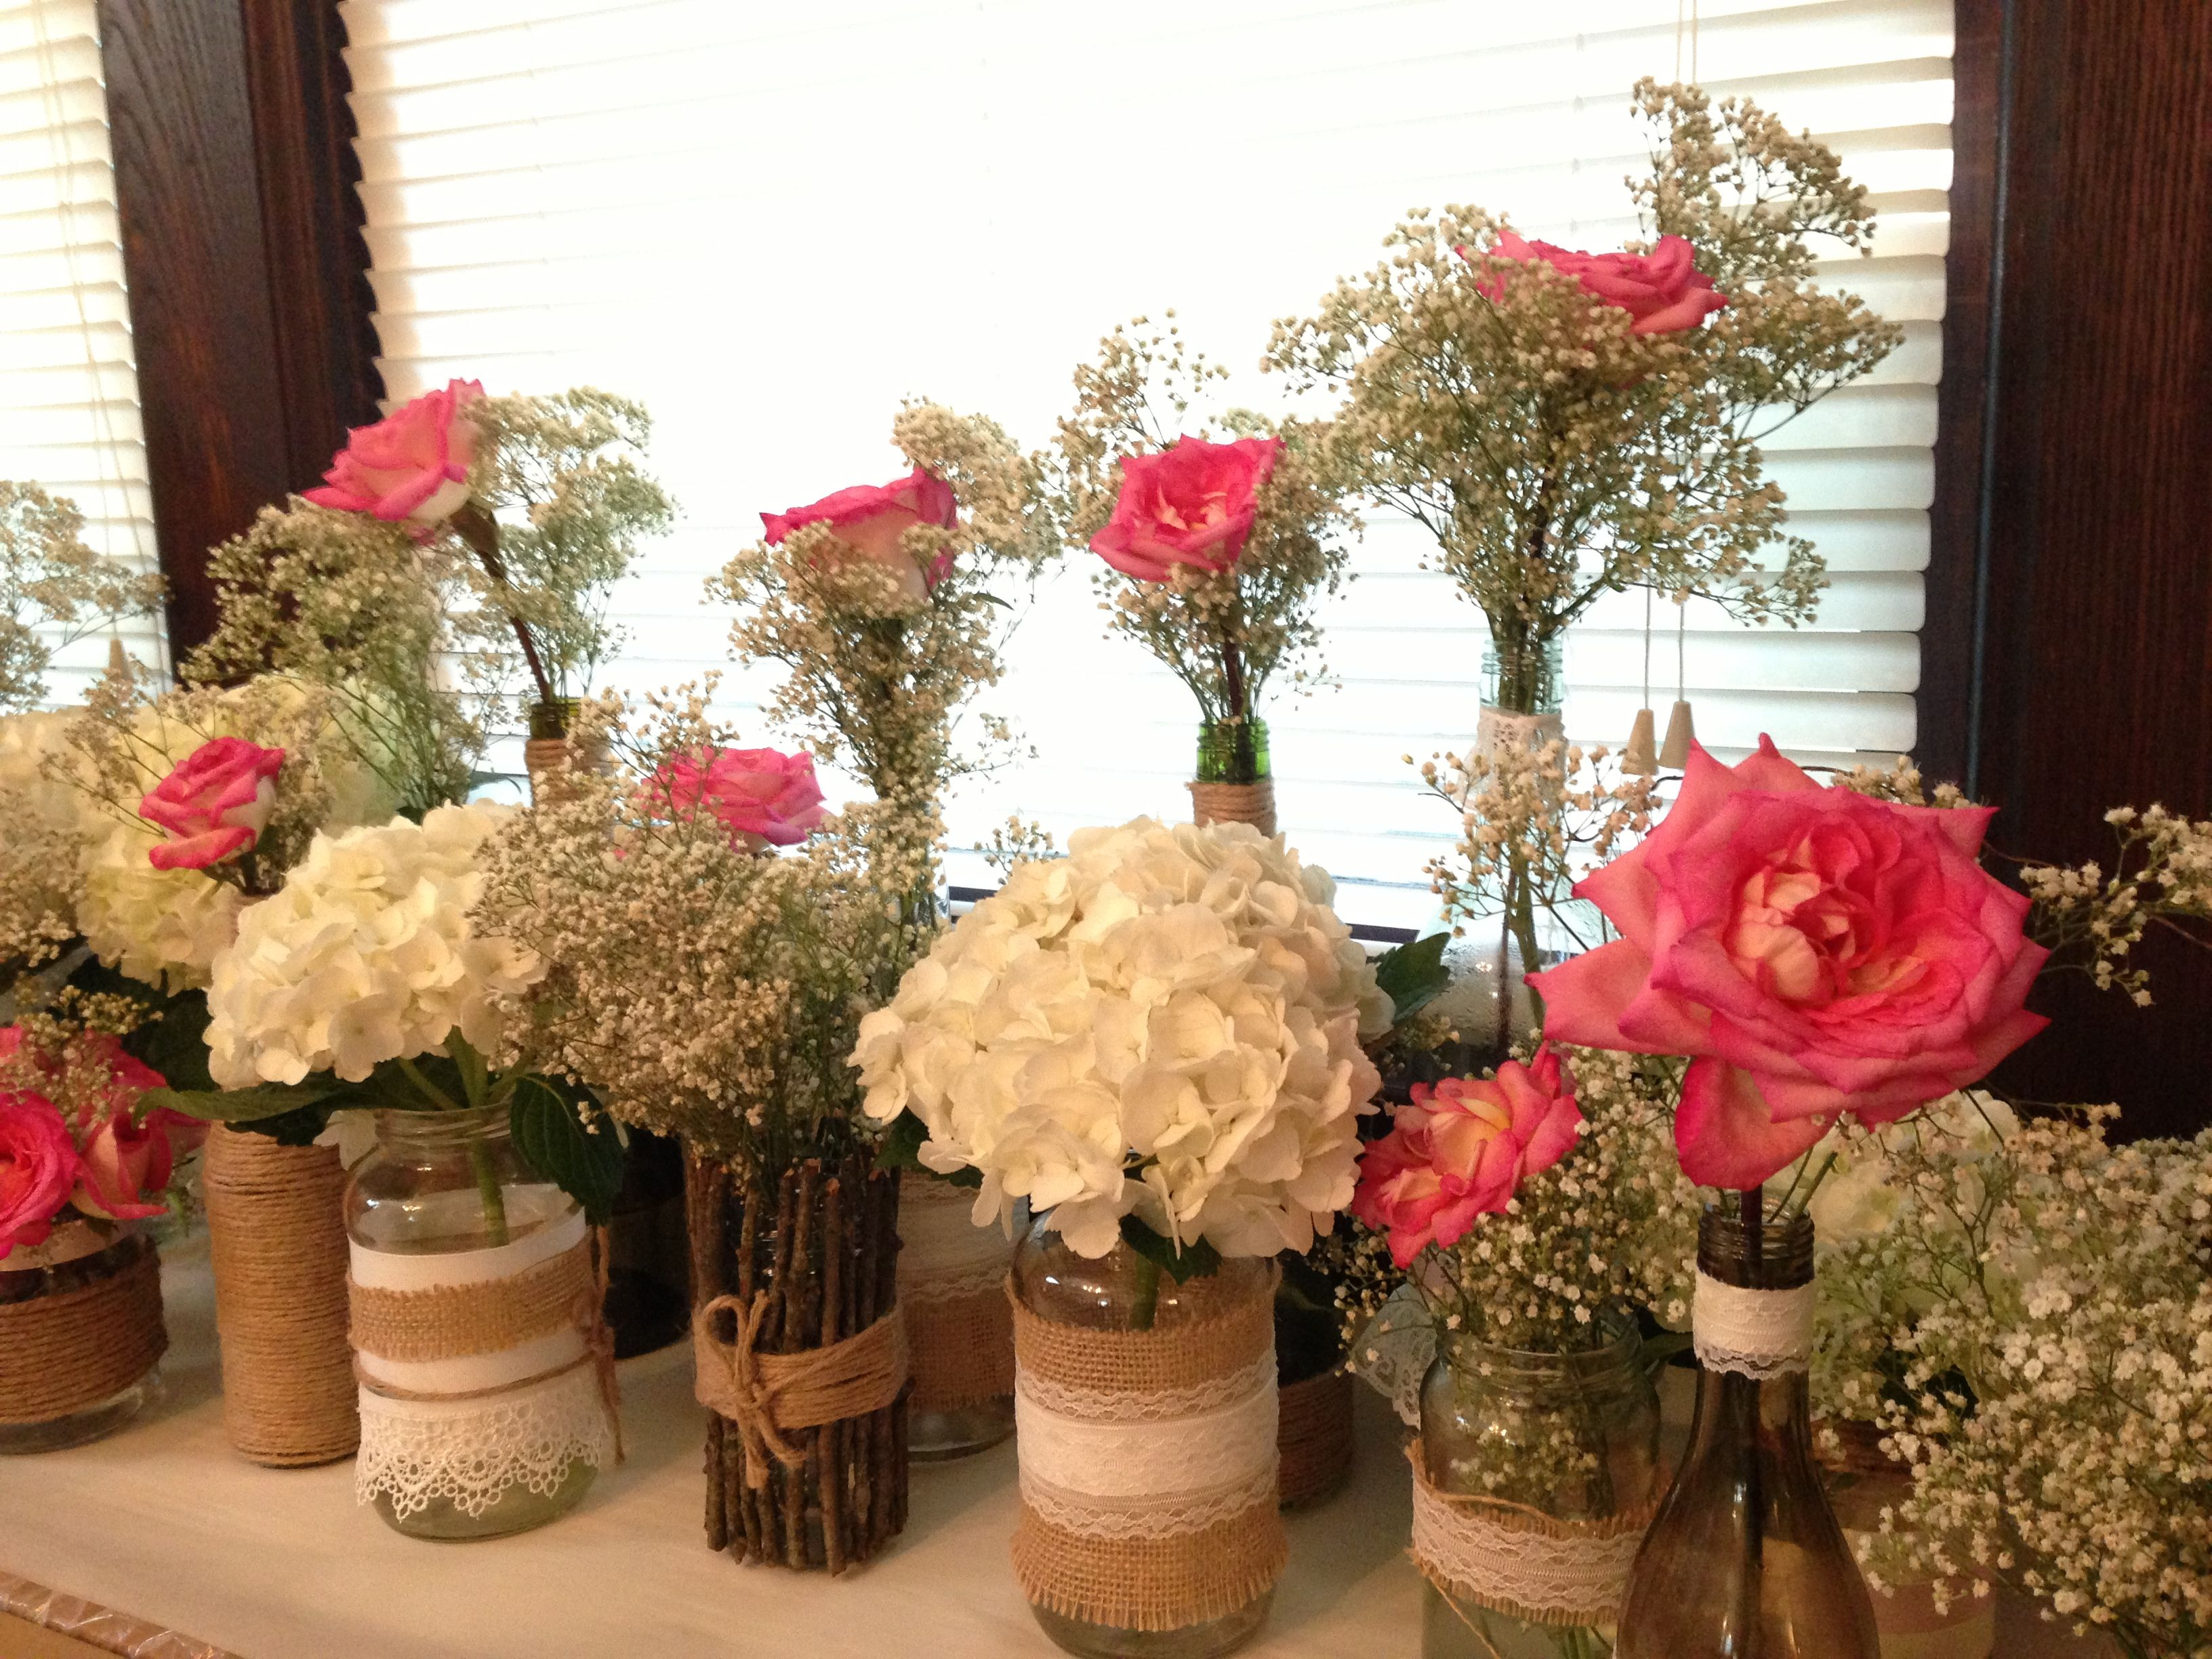 Rustic centerpieces diy rustic engagement party diy rustic centerpieces diy junglespirit Choice Image